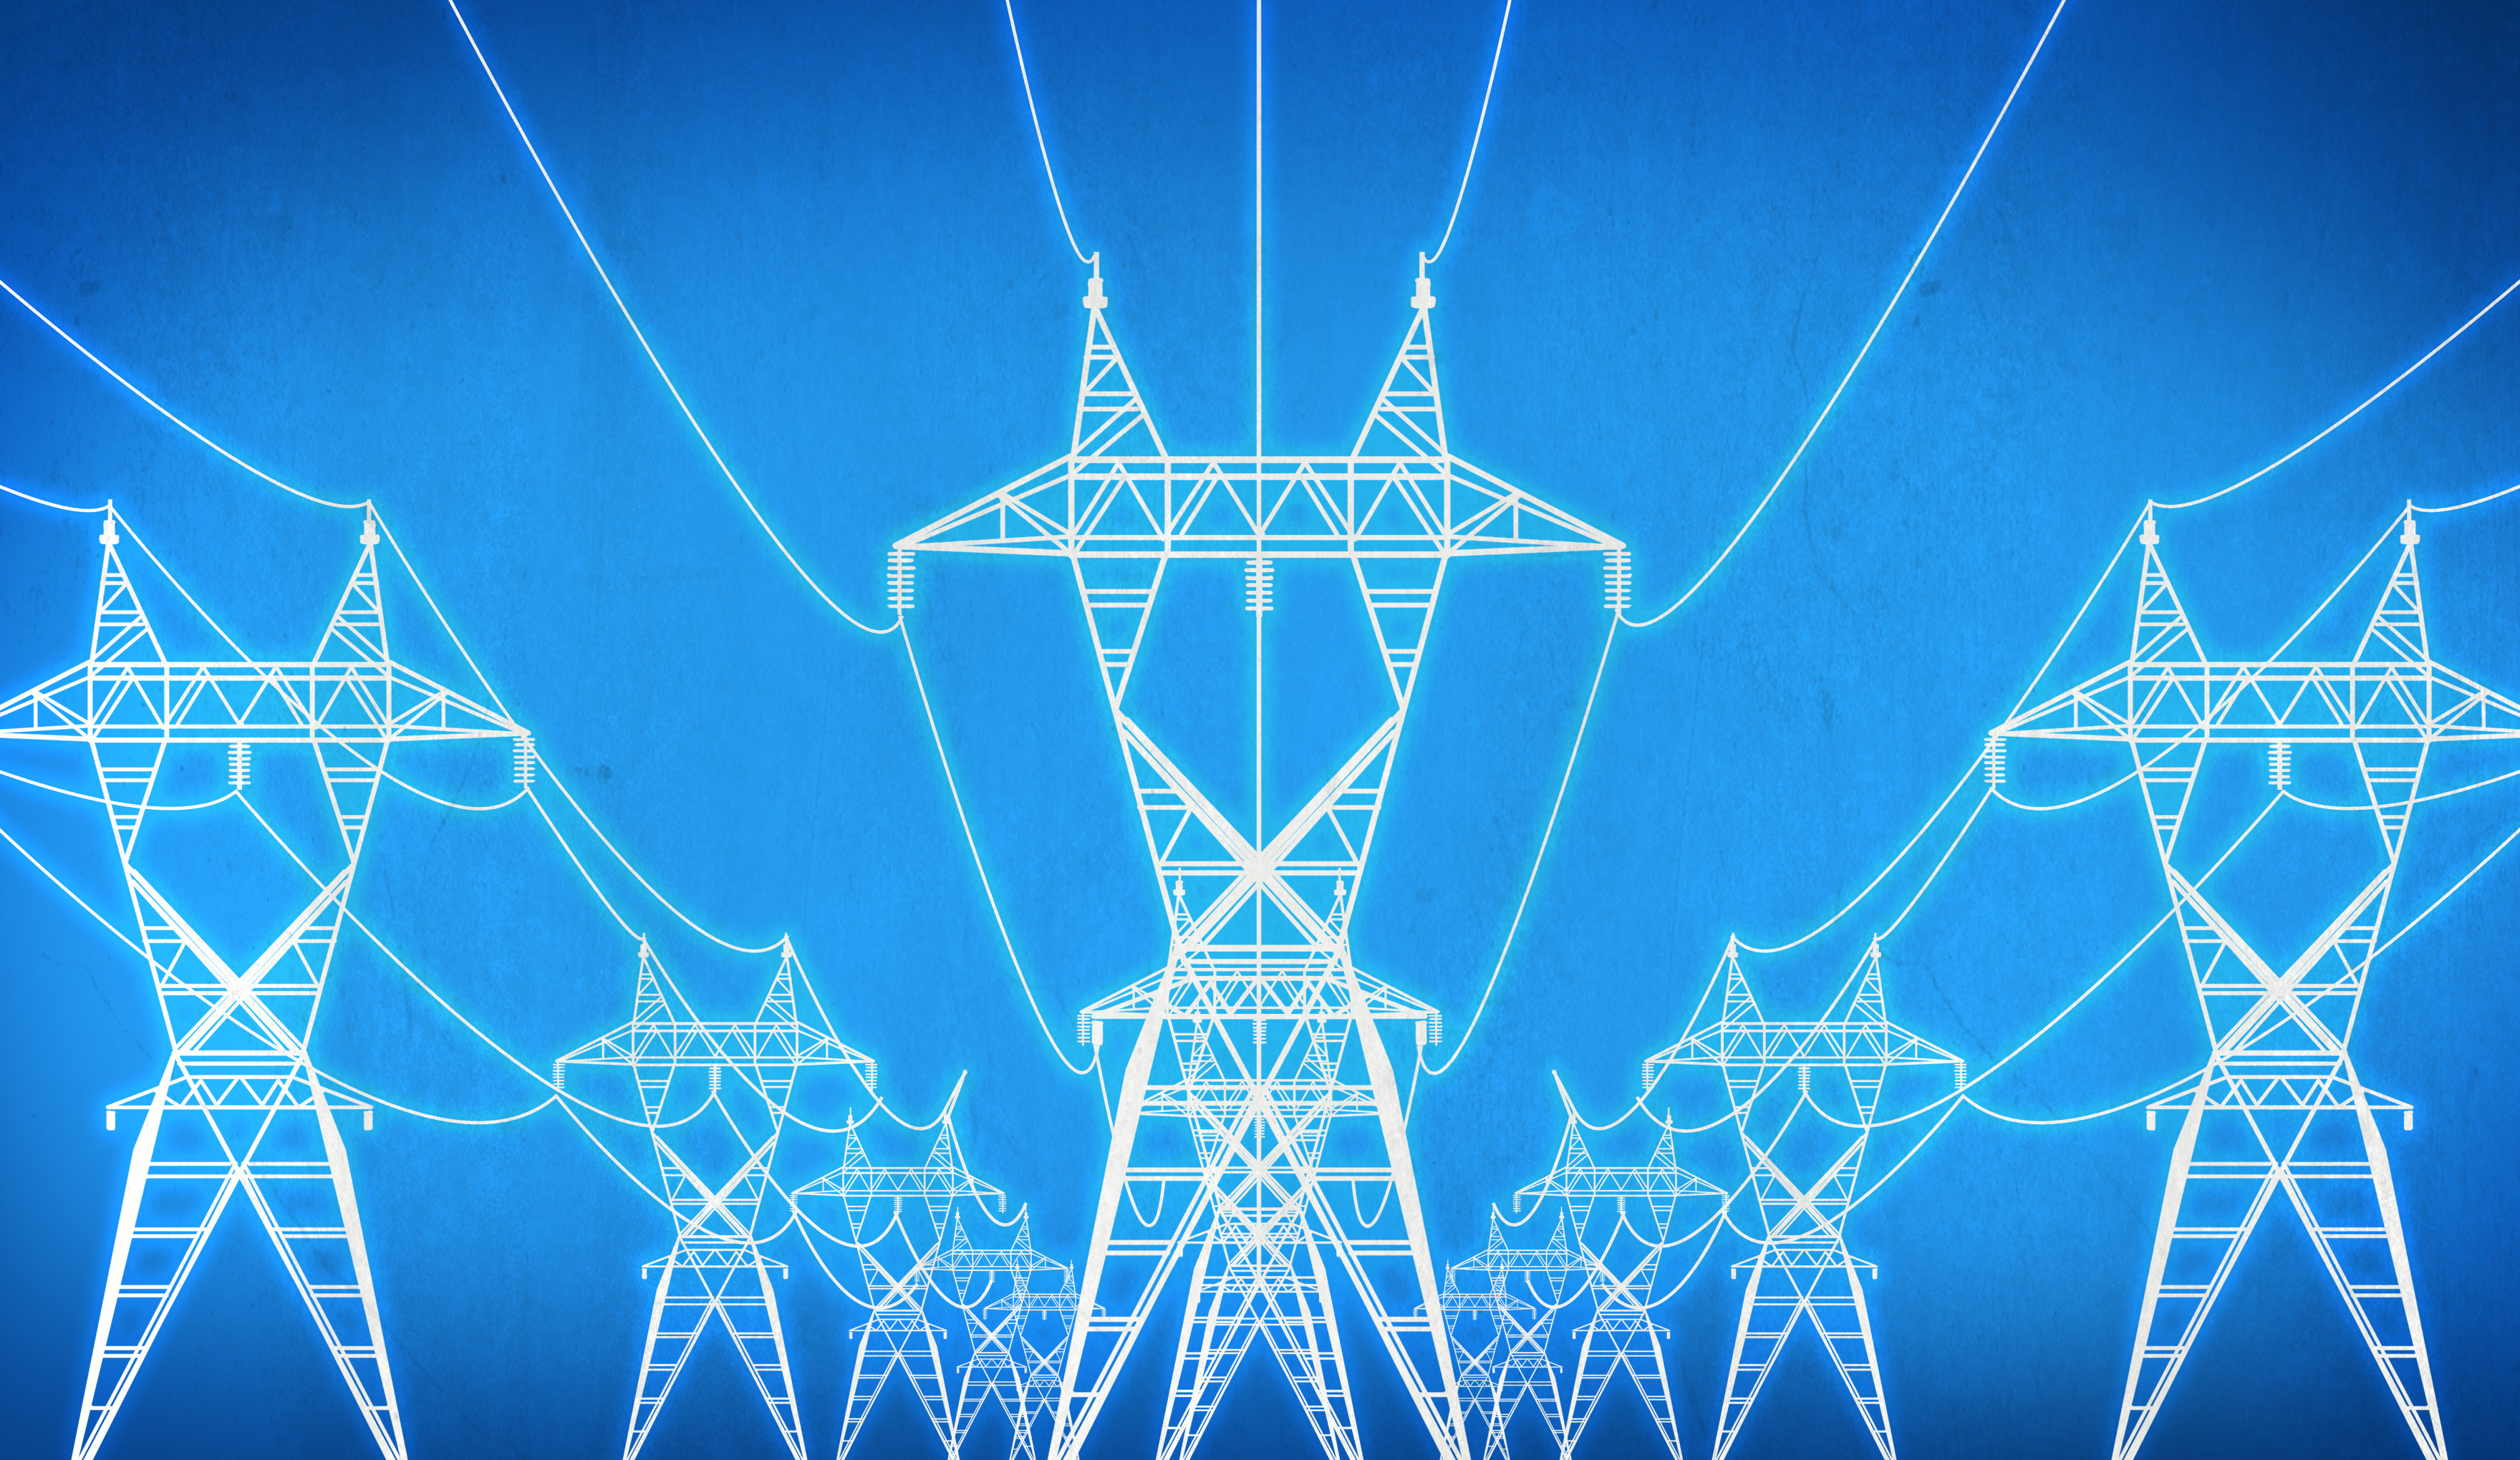 New approach for modern power grids that increases efficiency, reduces cost : Details inside